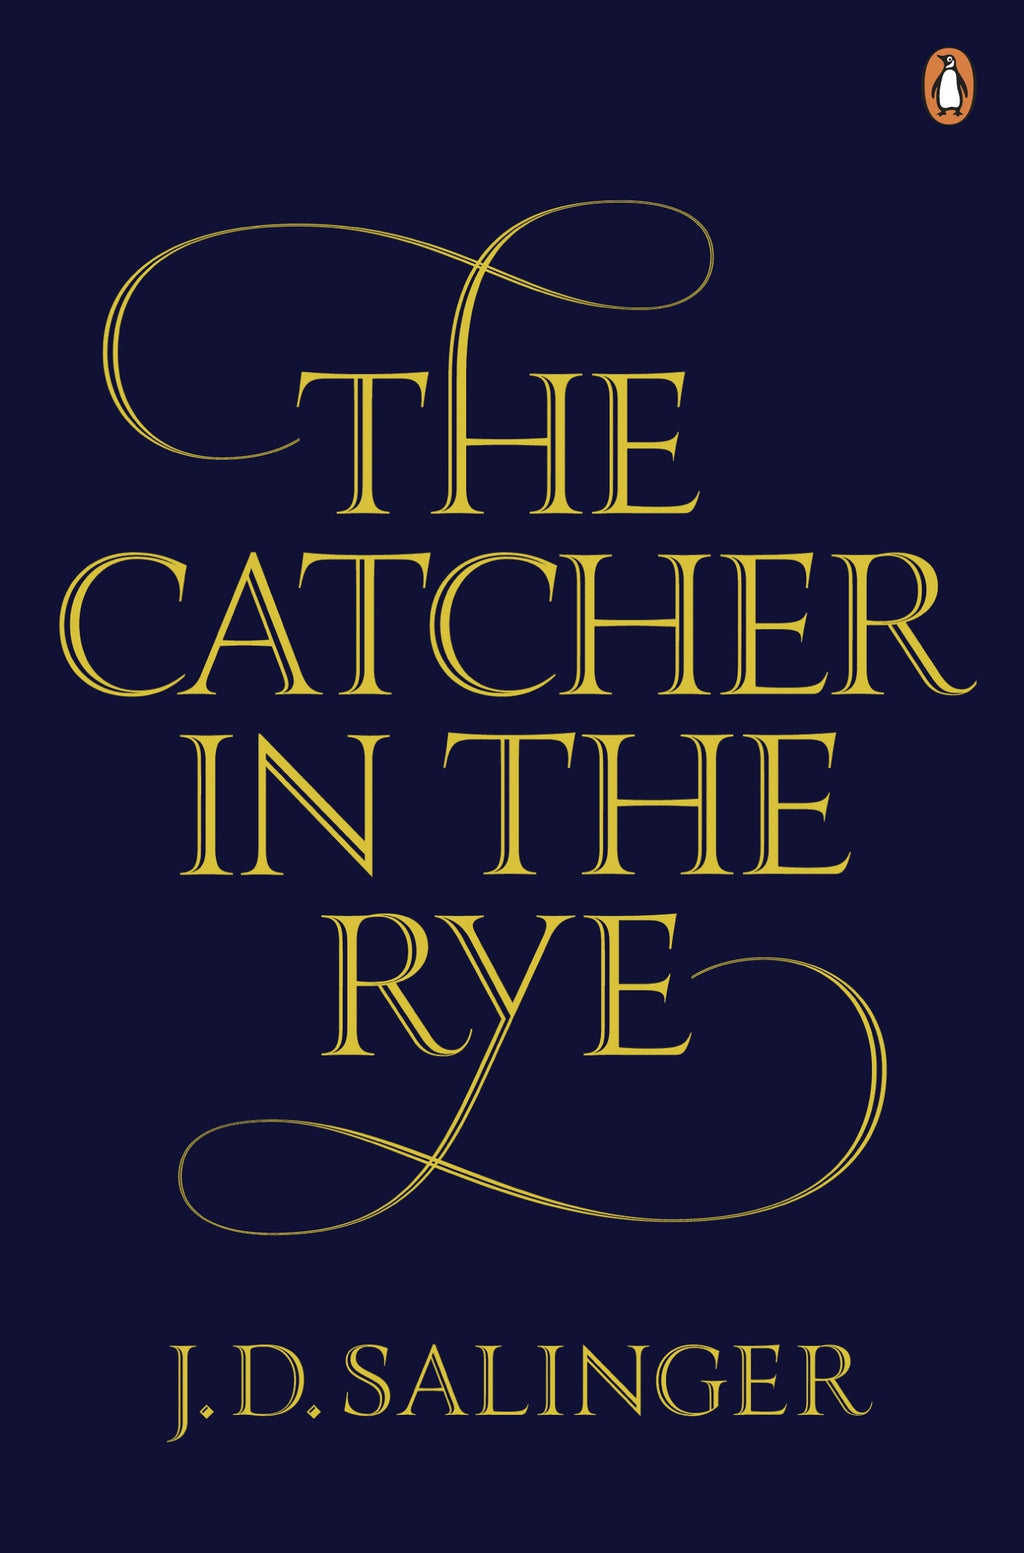 Catcher in the Rye by J D Salinger - UPPERcase